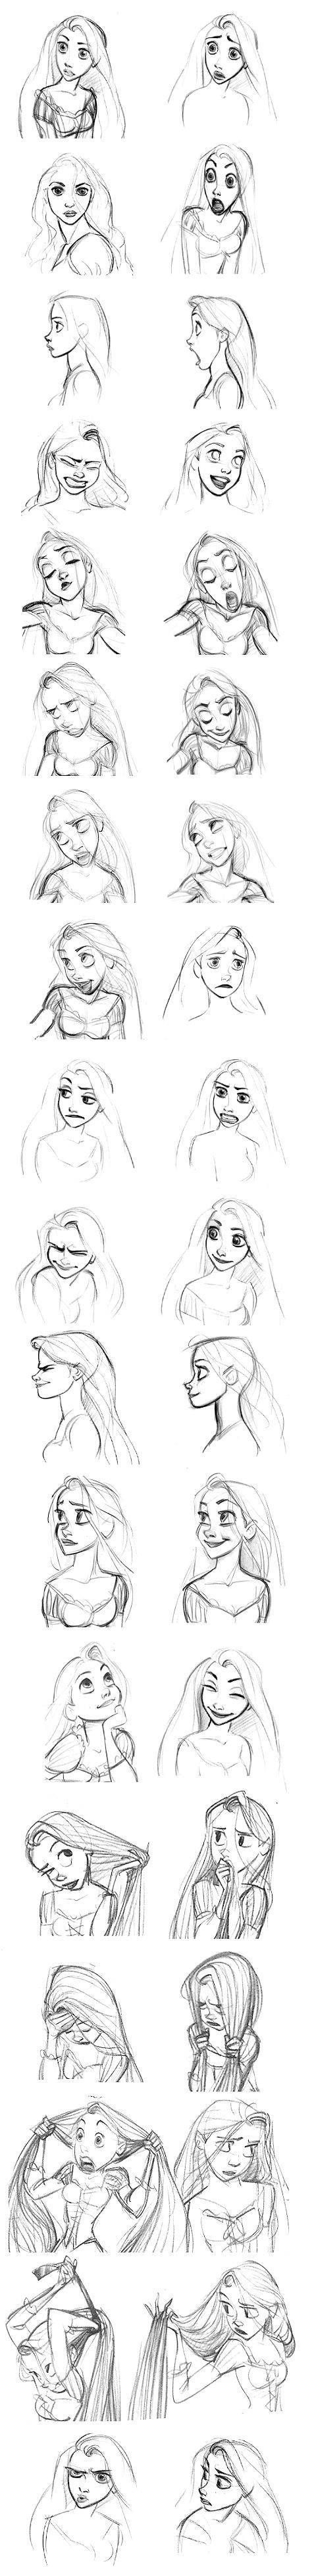 Ms de 25 ideas increbles sobre Dibujo de caras en Pinterest